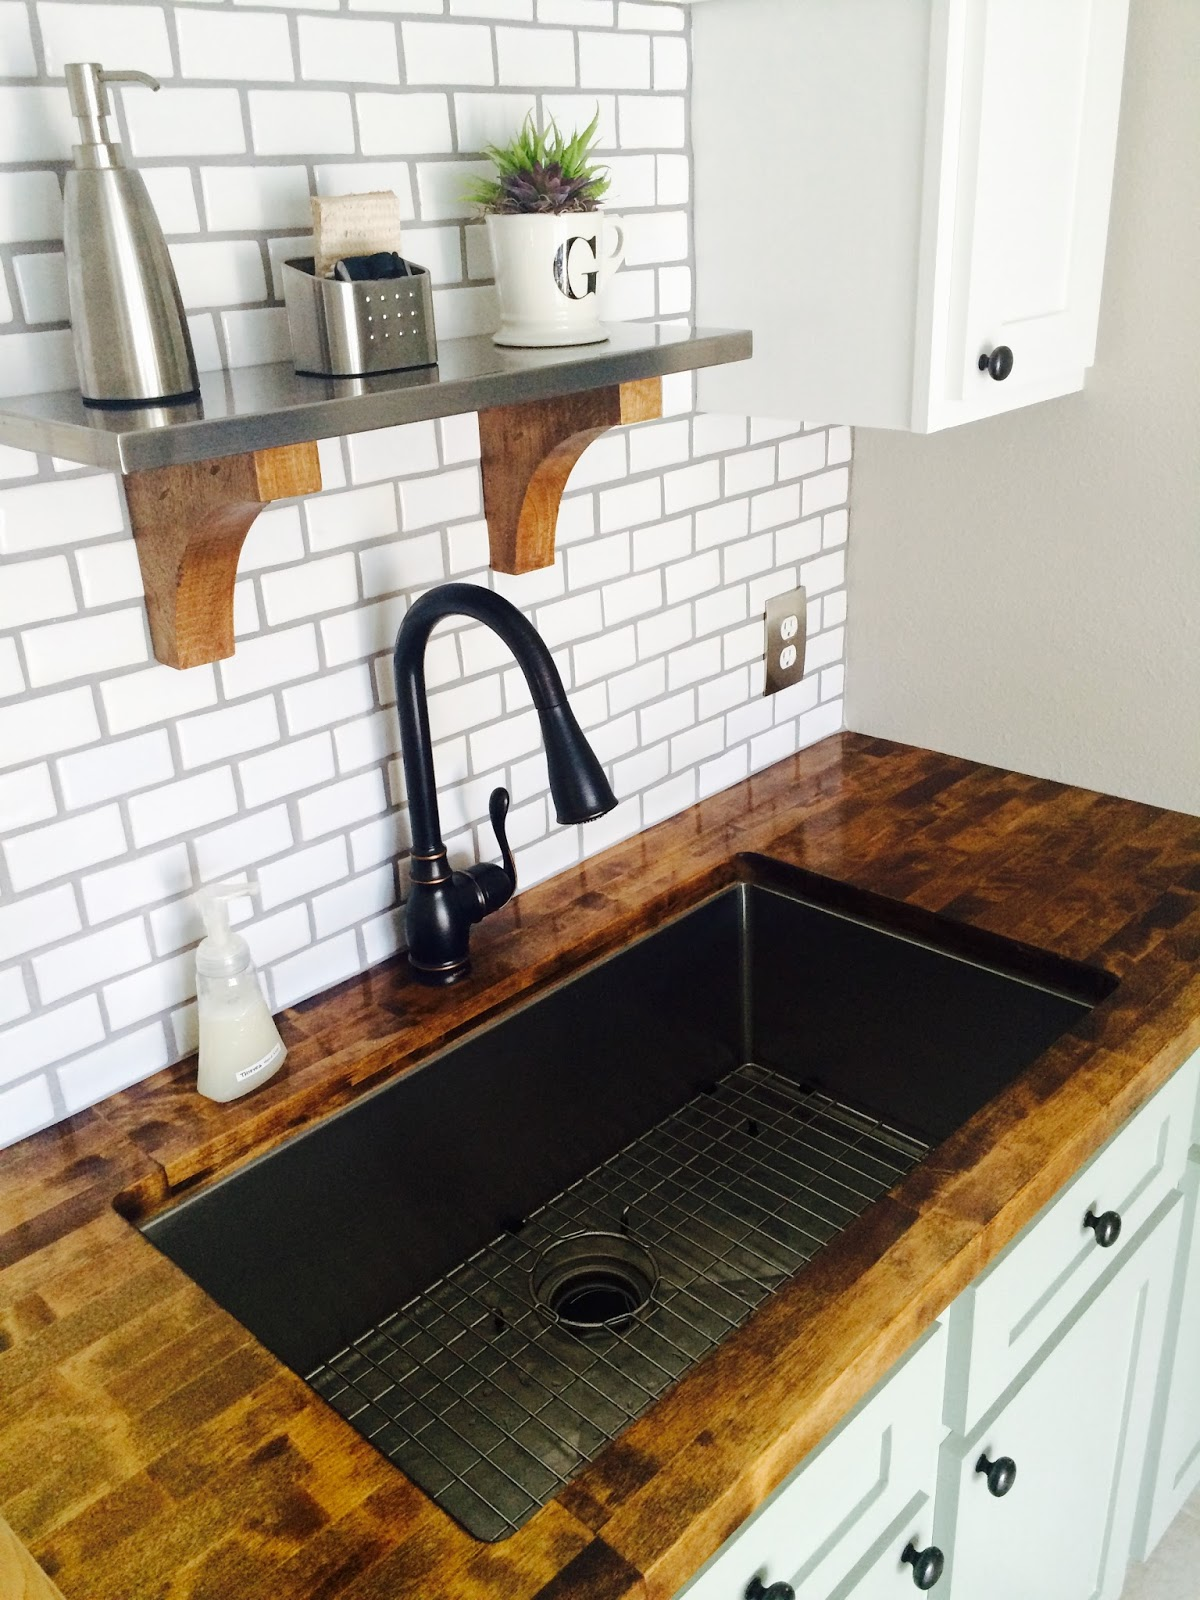 Sealing Kitchen Sink In Countertop Using Silicone Gasket